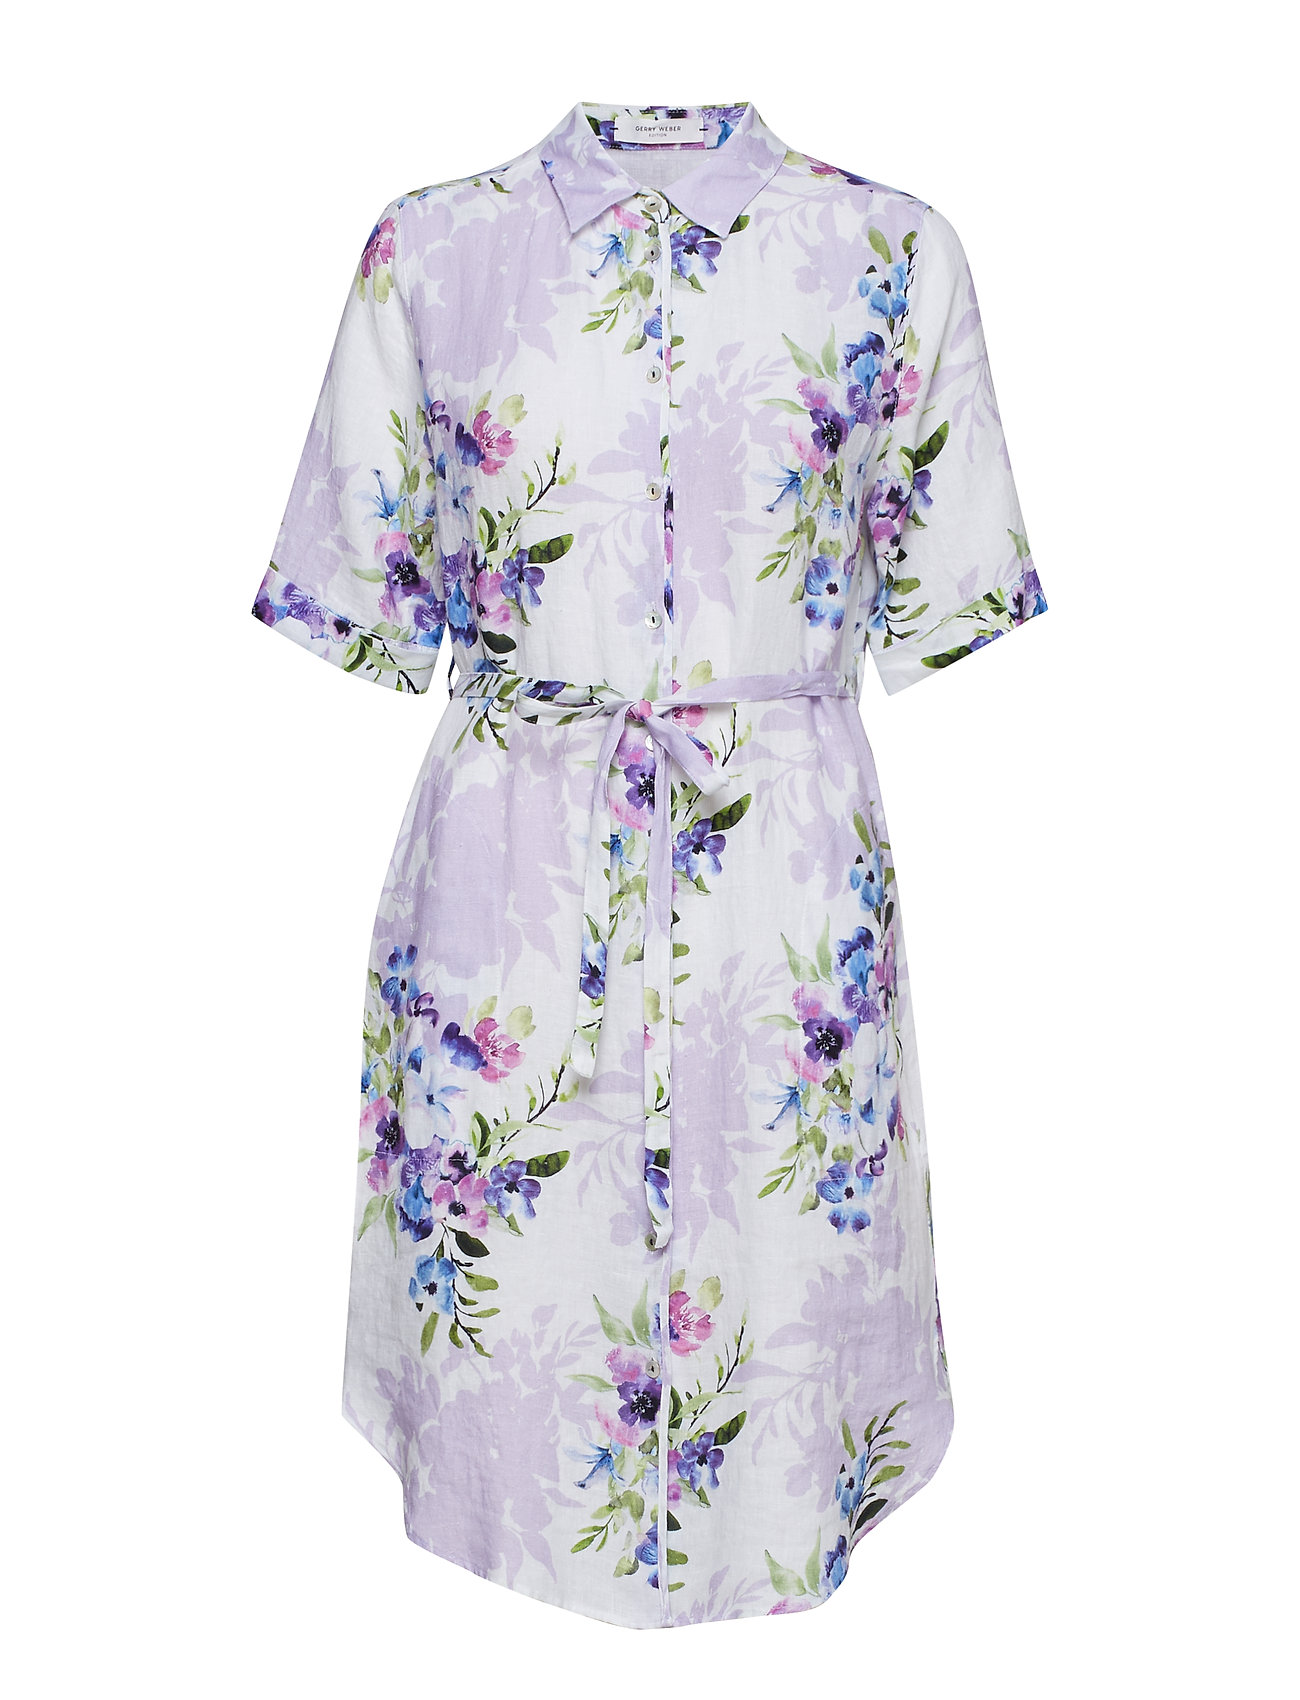 Gerry Weber Edition DRESS WOVEN FABRIC - LAVENDER-WHITE-GREEN